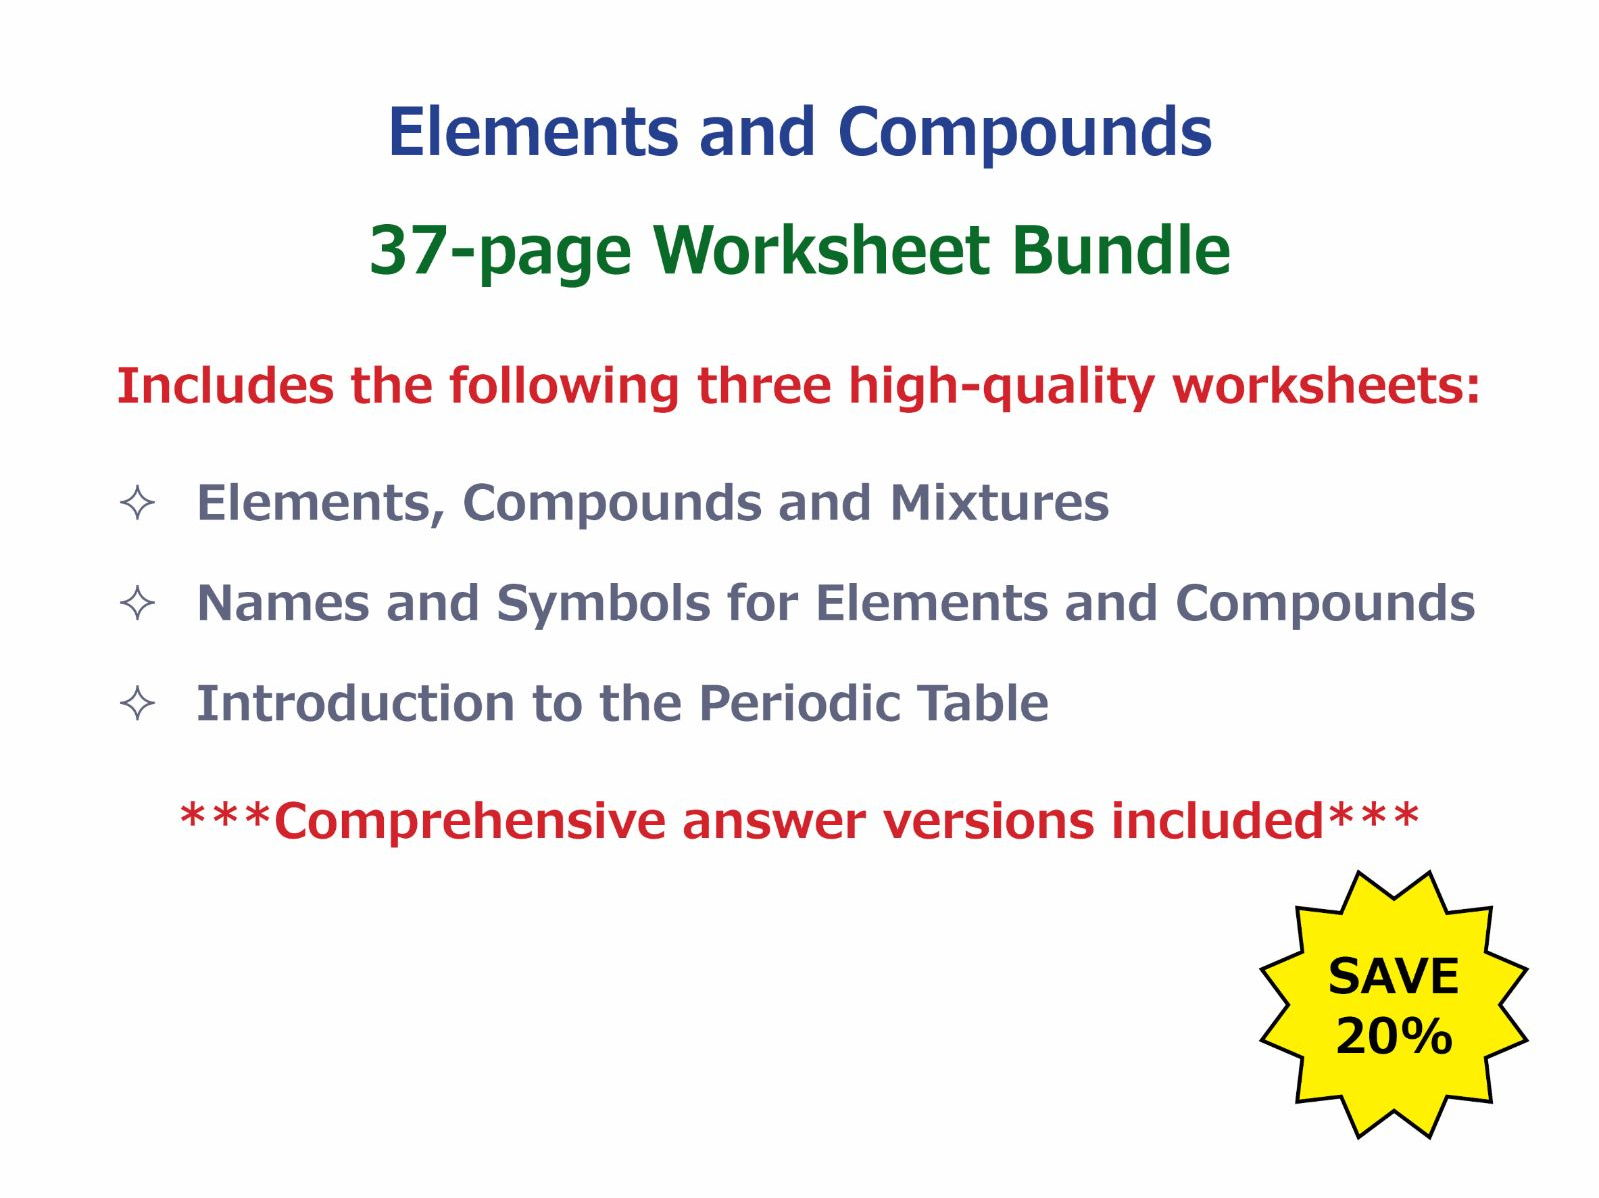 Introduction to the periodic table worksheet by introduction to the periodic table worksheet by goodscienceworksheets teaching resources tes gamestrikefo Choice Image